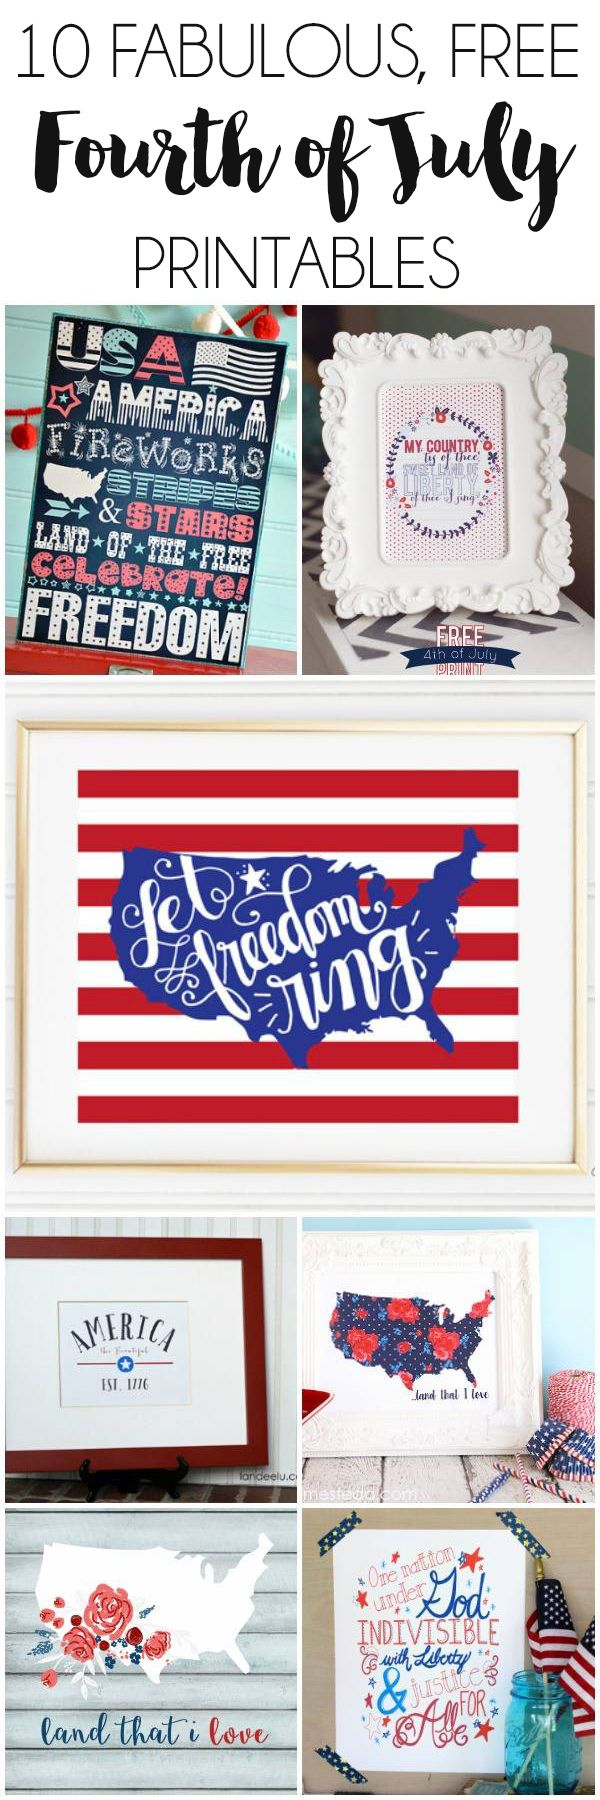 10 Free 4th of July Printables |dawnnicoledesigns.com